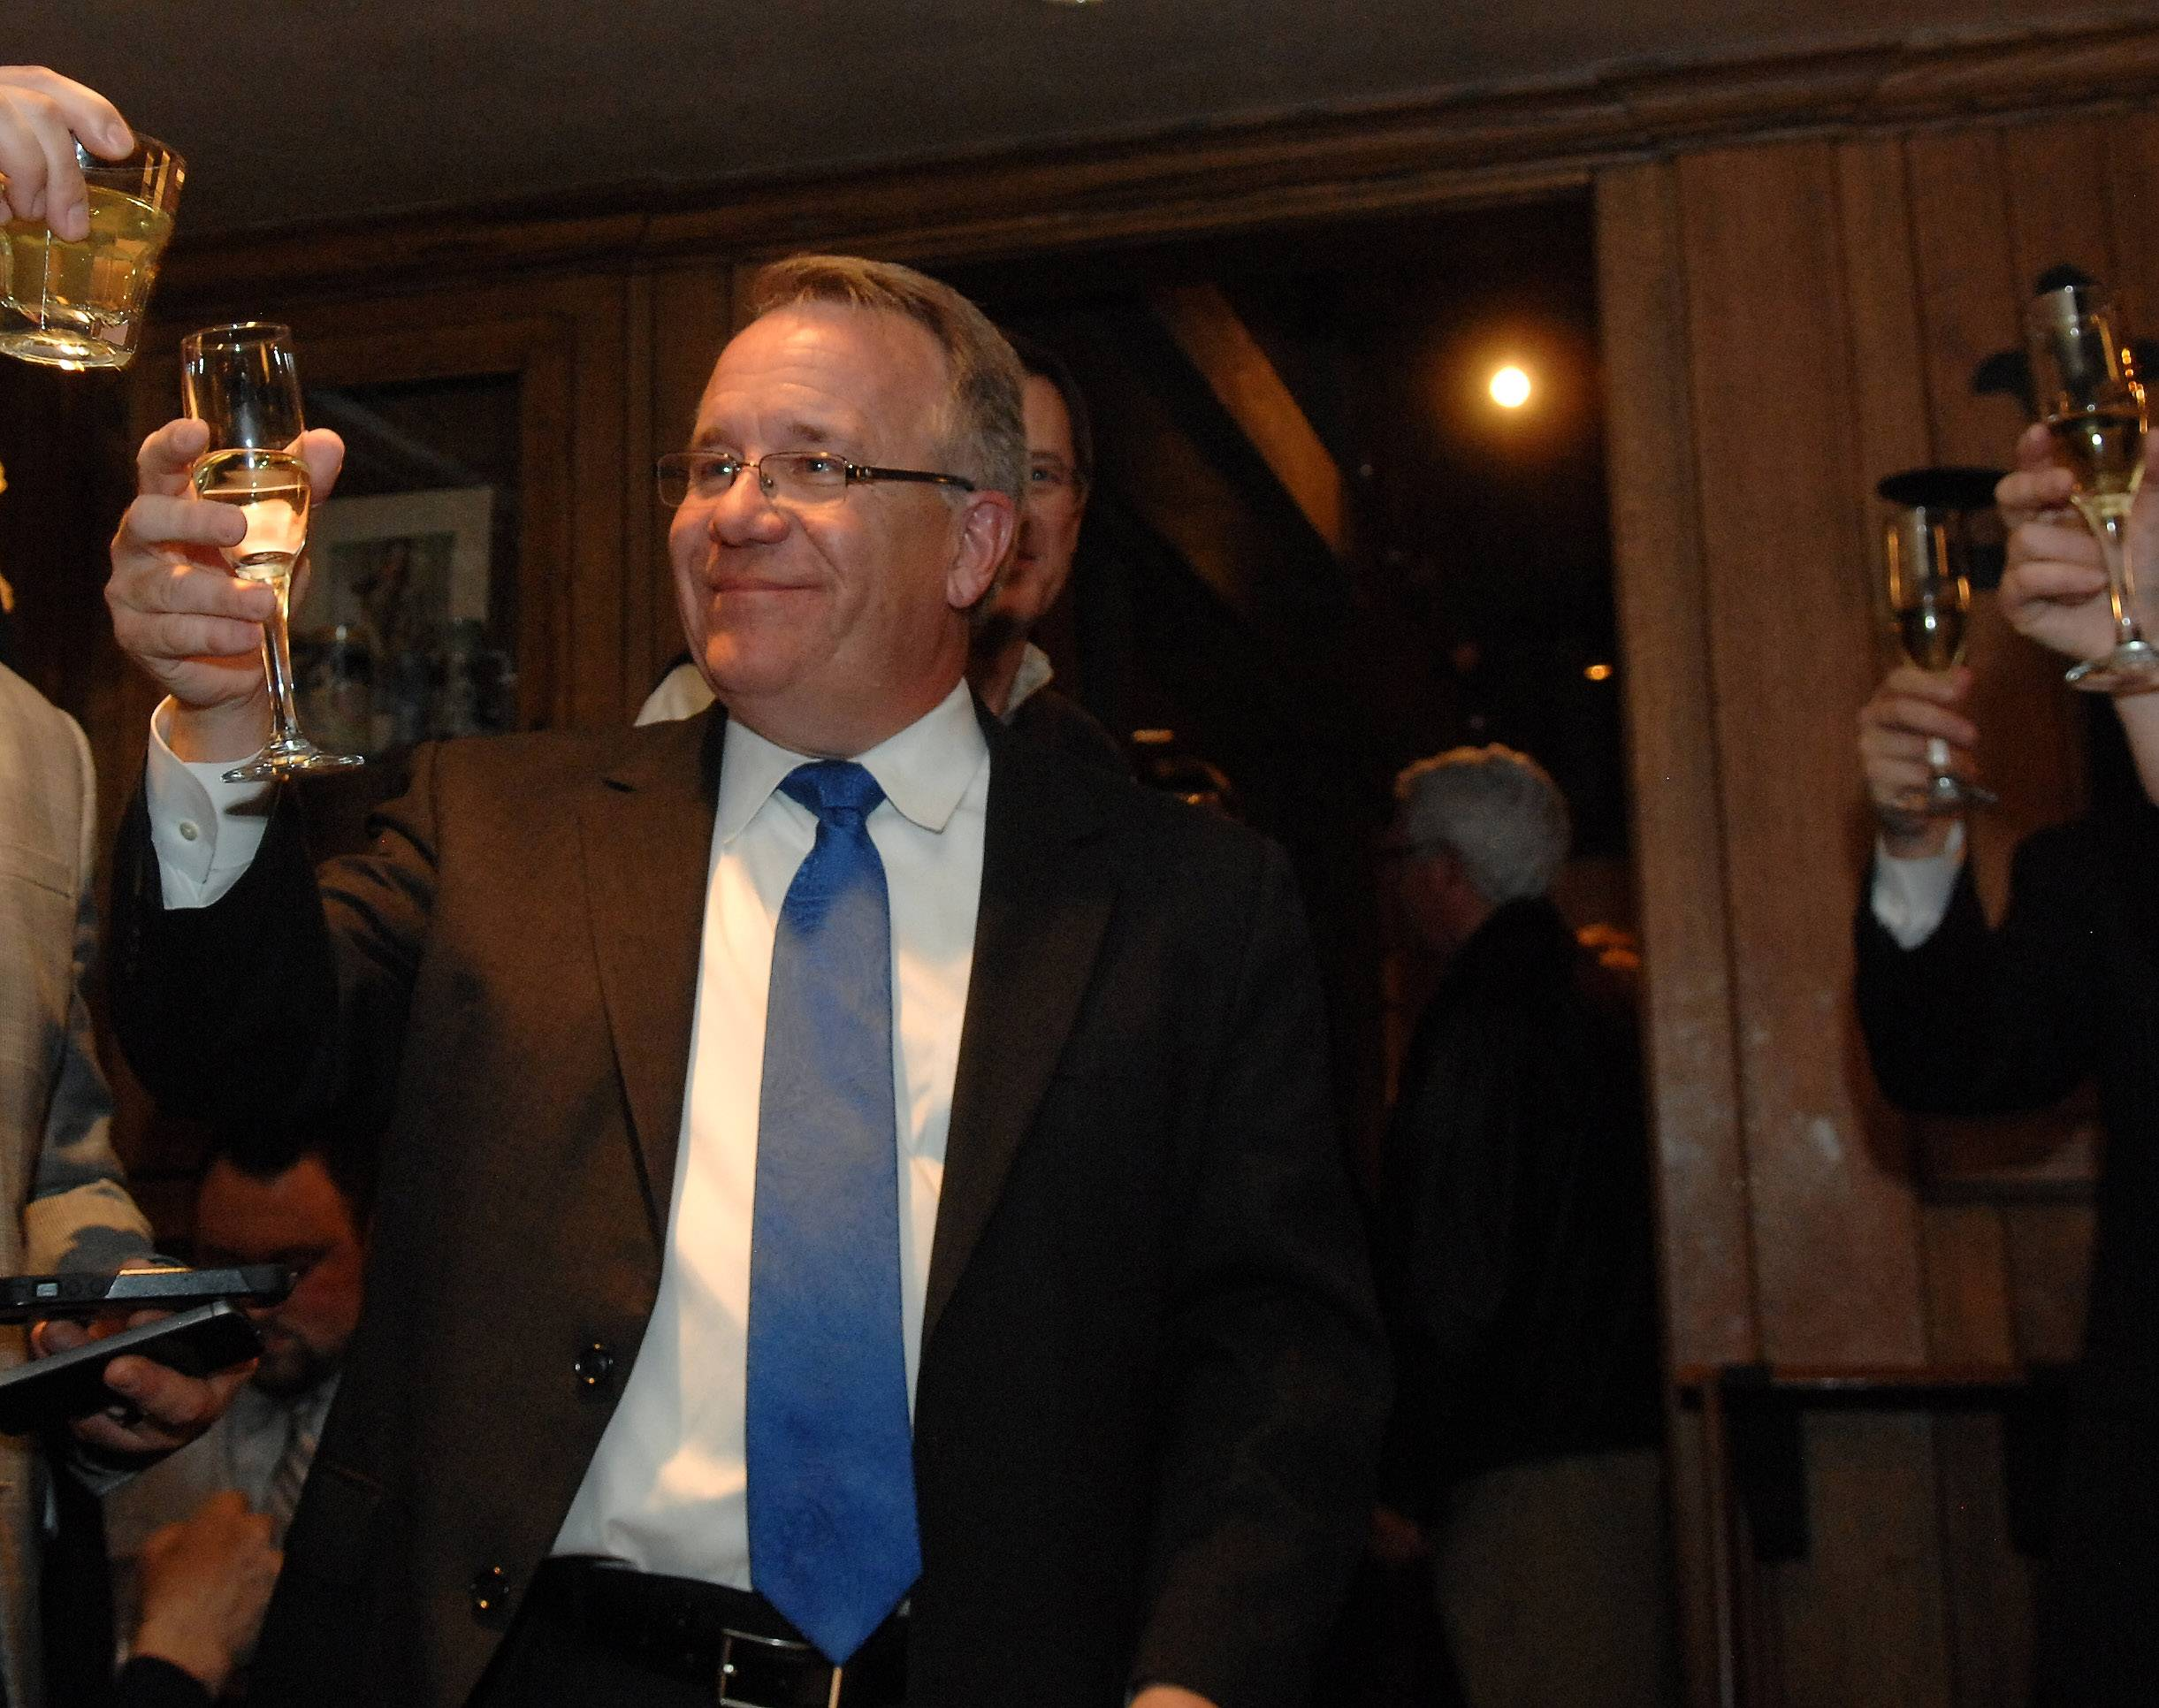 Supporters participate in a toast to Steve Andersson of Geneva after he claimed victory in the Republican nomination for state 65th House representative at Village Squire in South Elgin Tuesday.